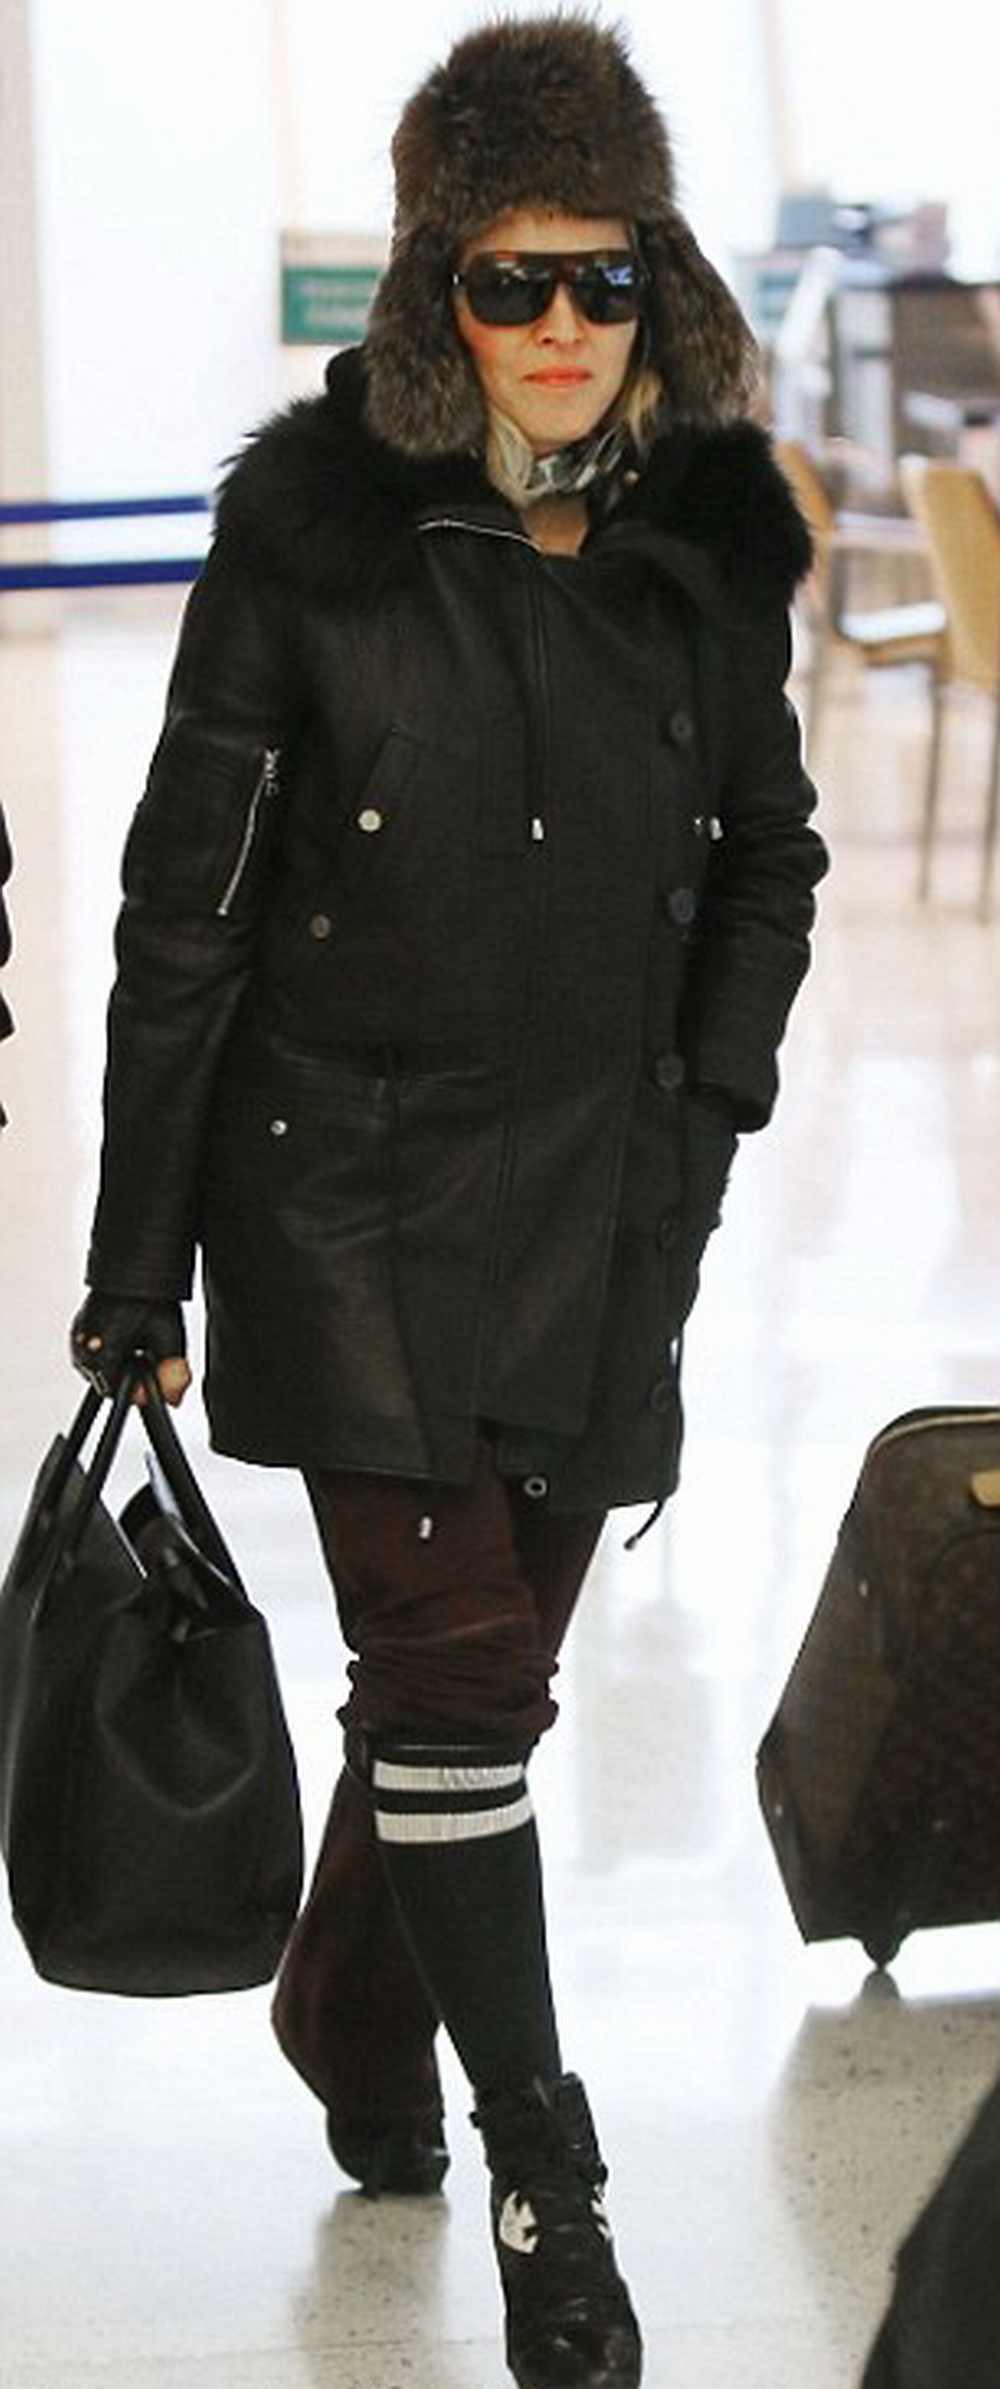 Madonna at JFK airport, New York - 1 February 2015 - Pictures (1)